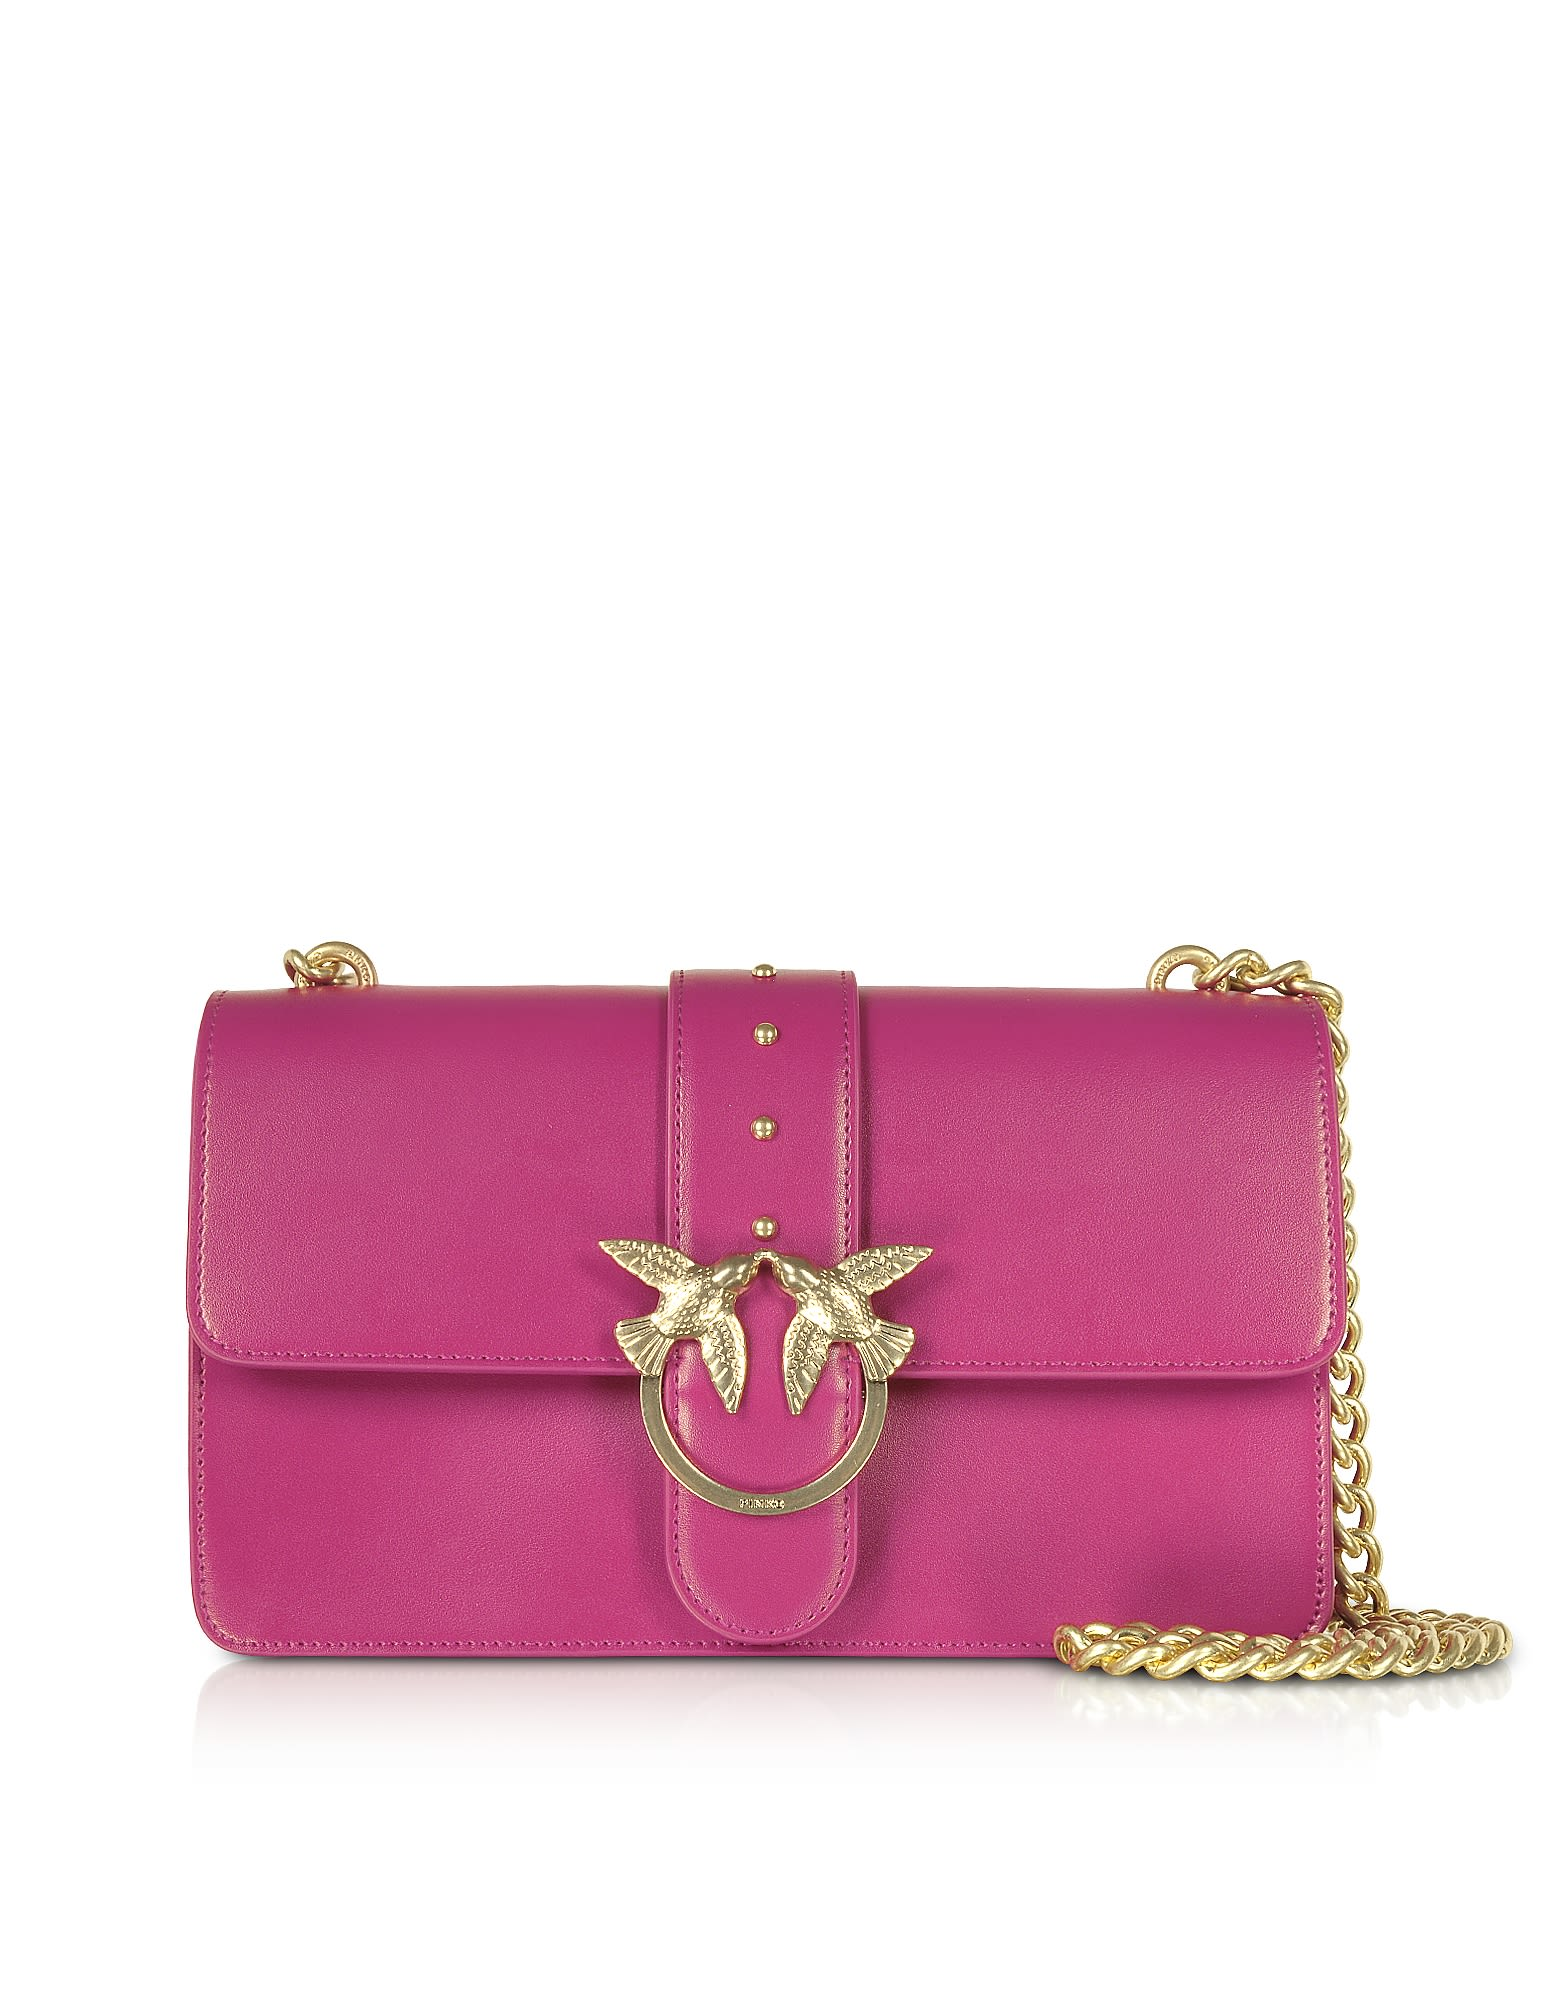 PINKO LOVE SIMPLY 5 LEATHER SHOULDER BAG